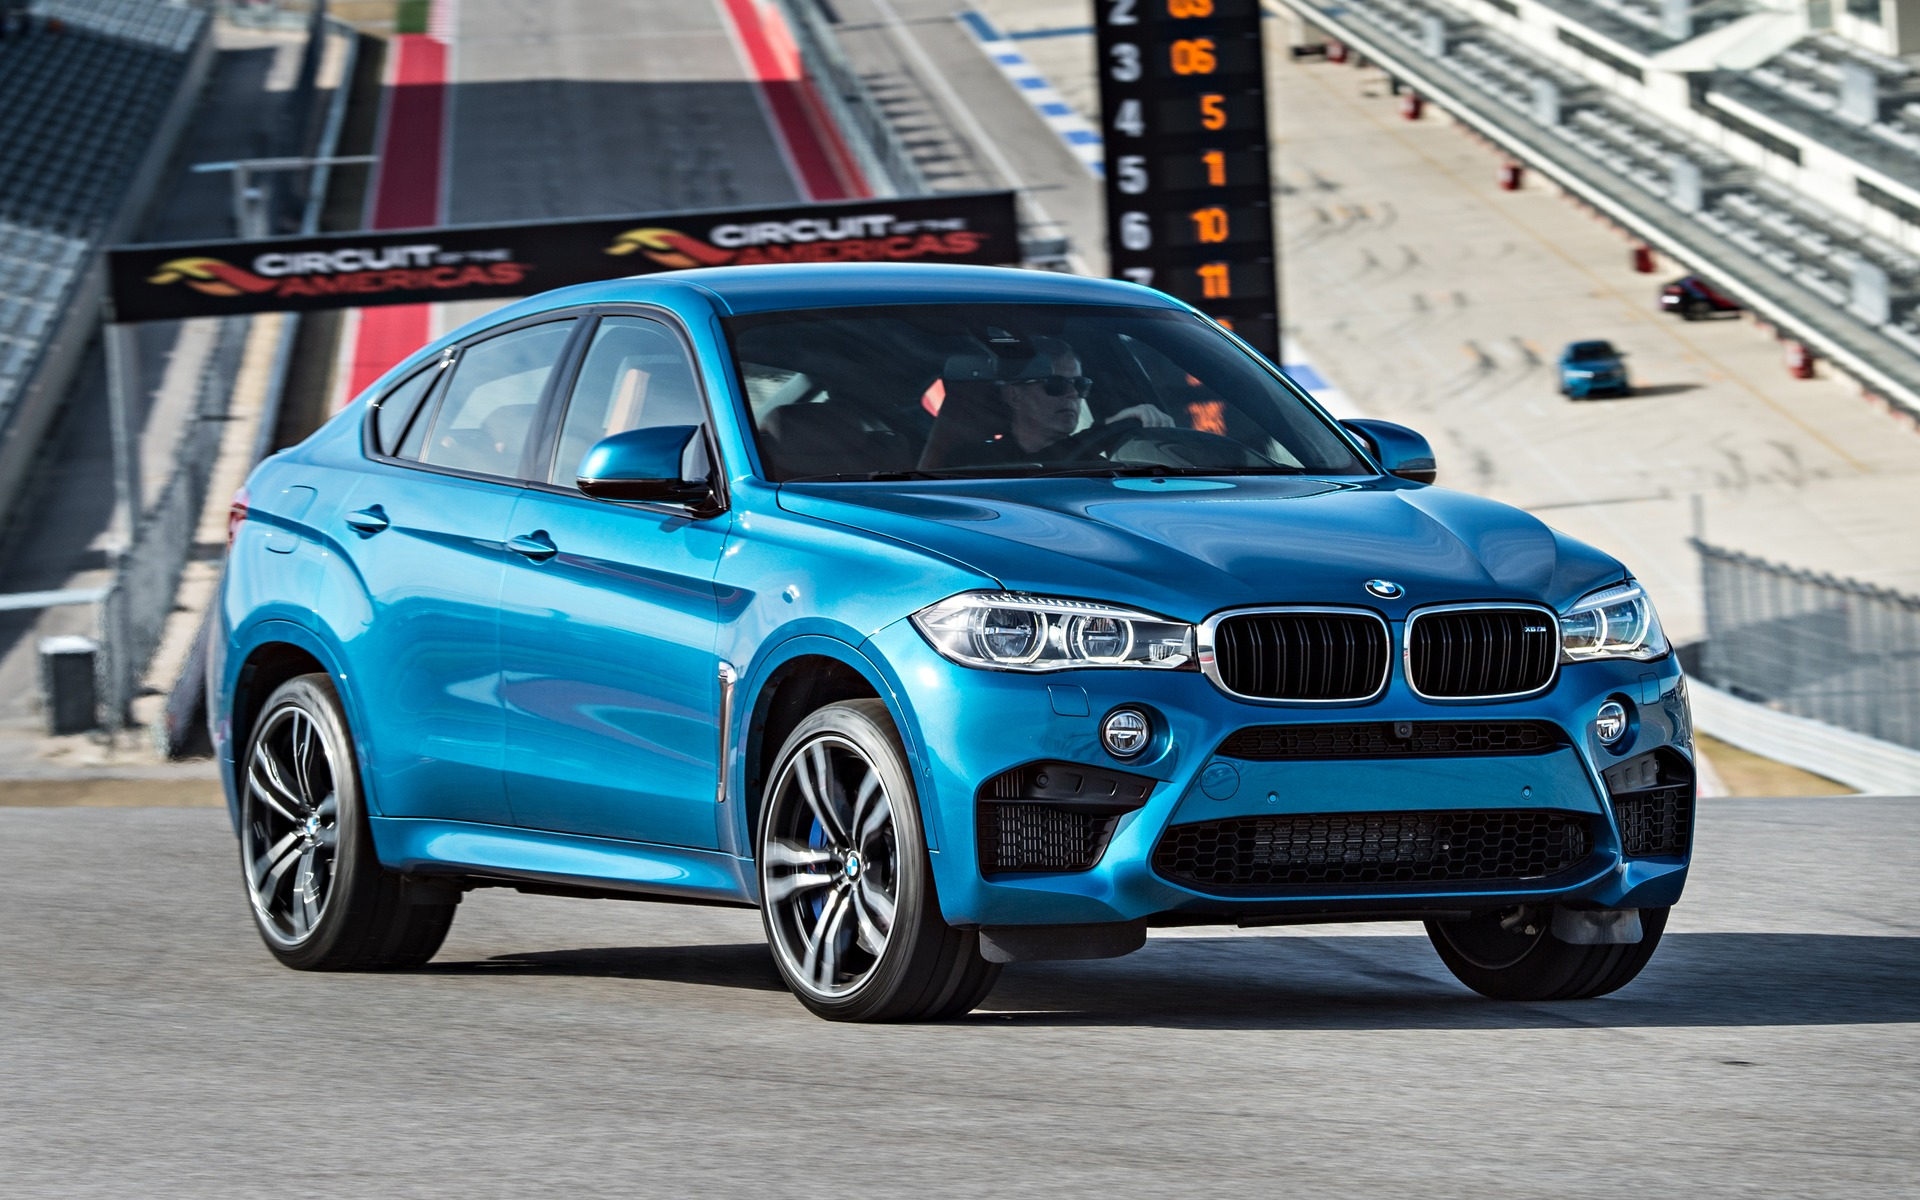 2019 Bmw X6 Xdrive35i Specifications The Car Guide